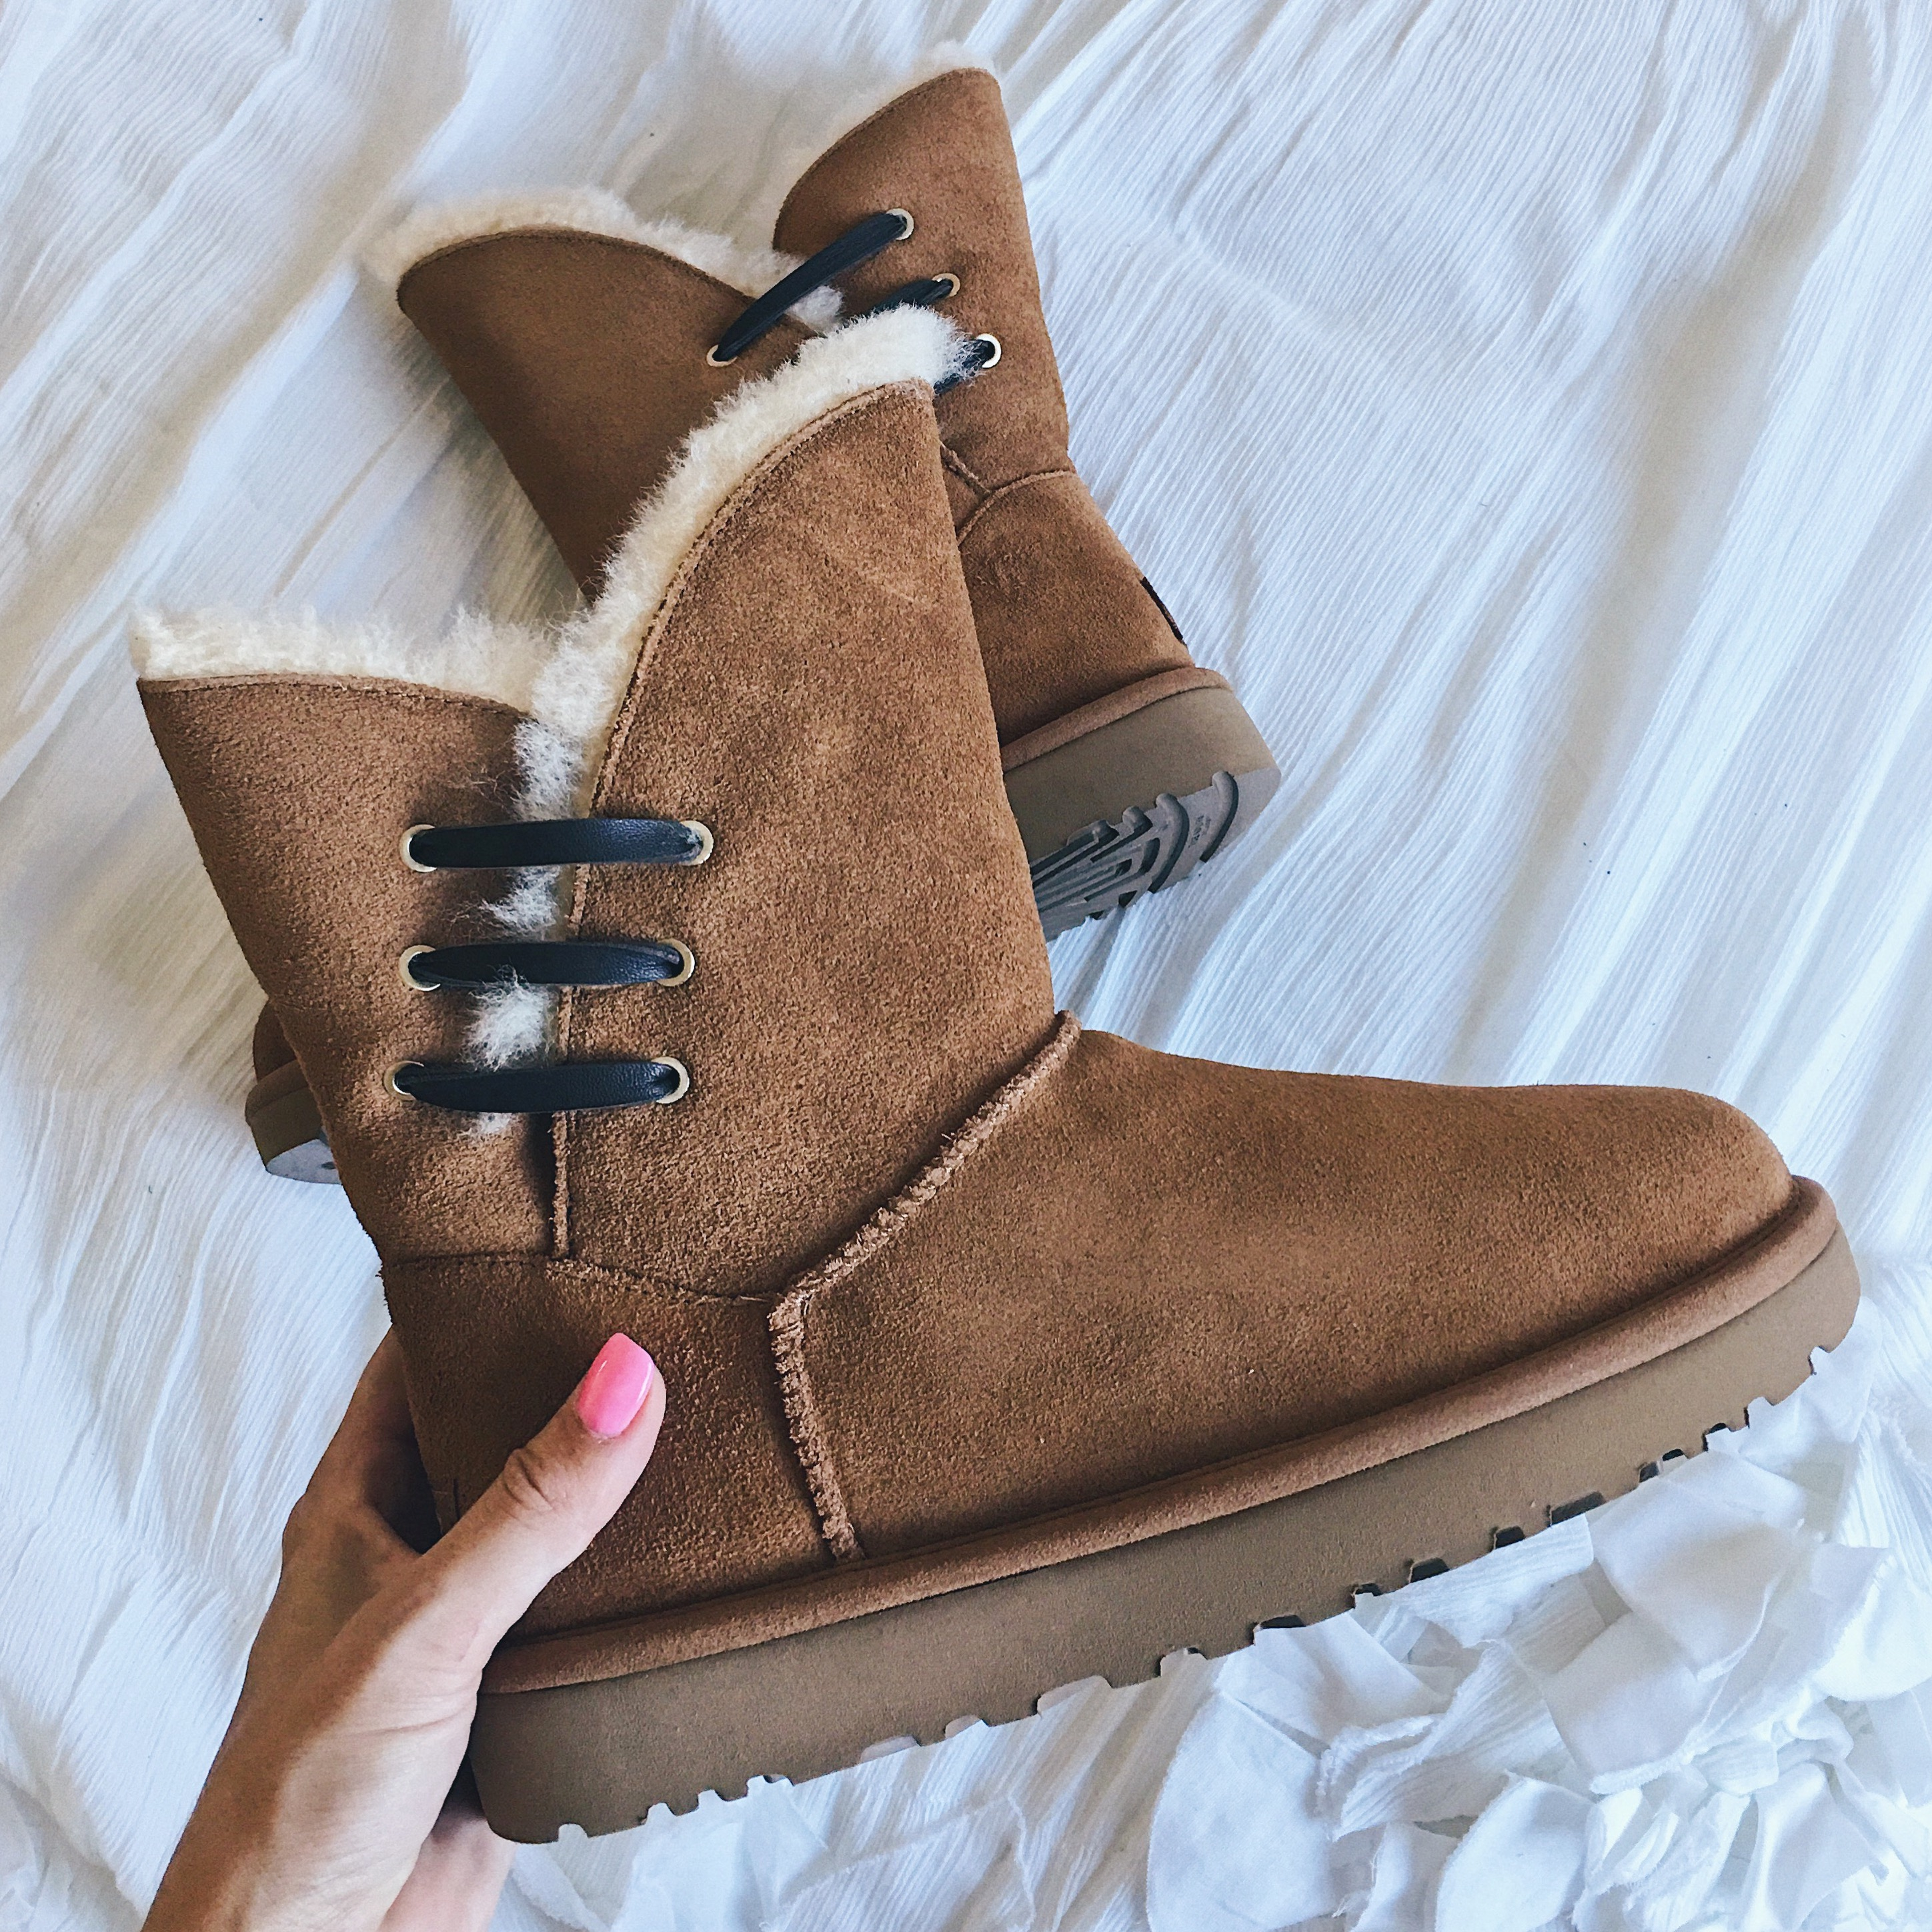 ugg boots nordstrom anniversay sale angela lanter hello gorgeous